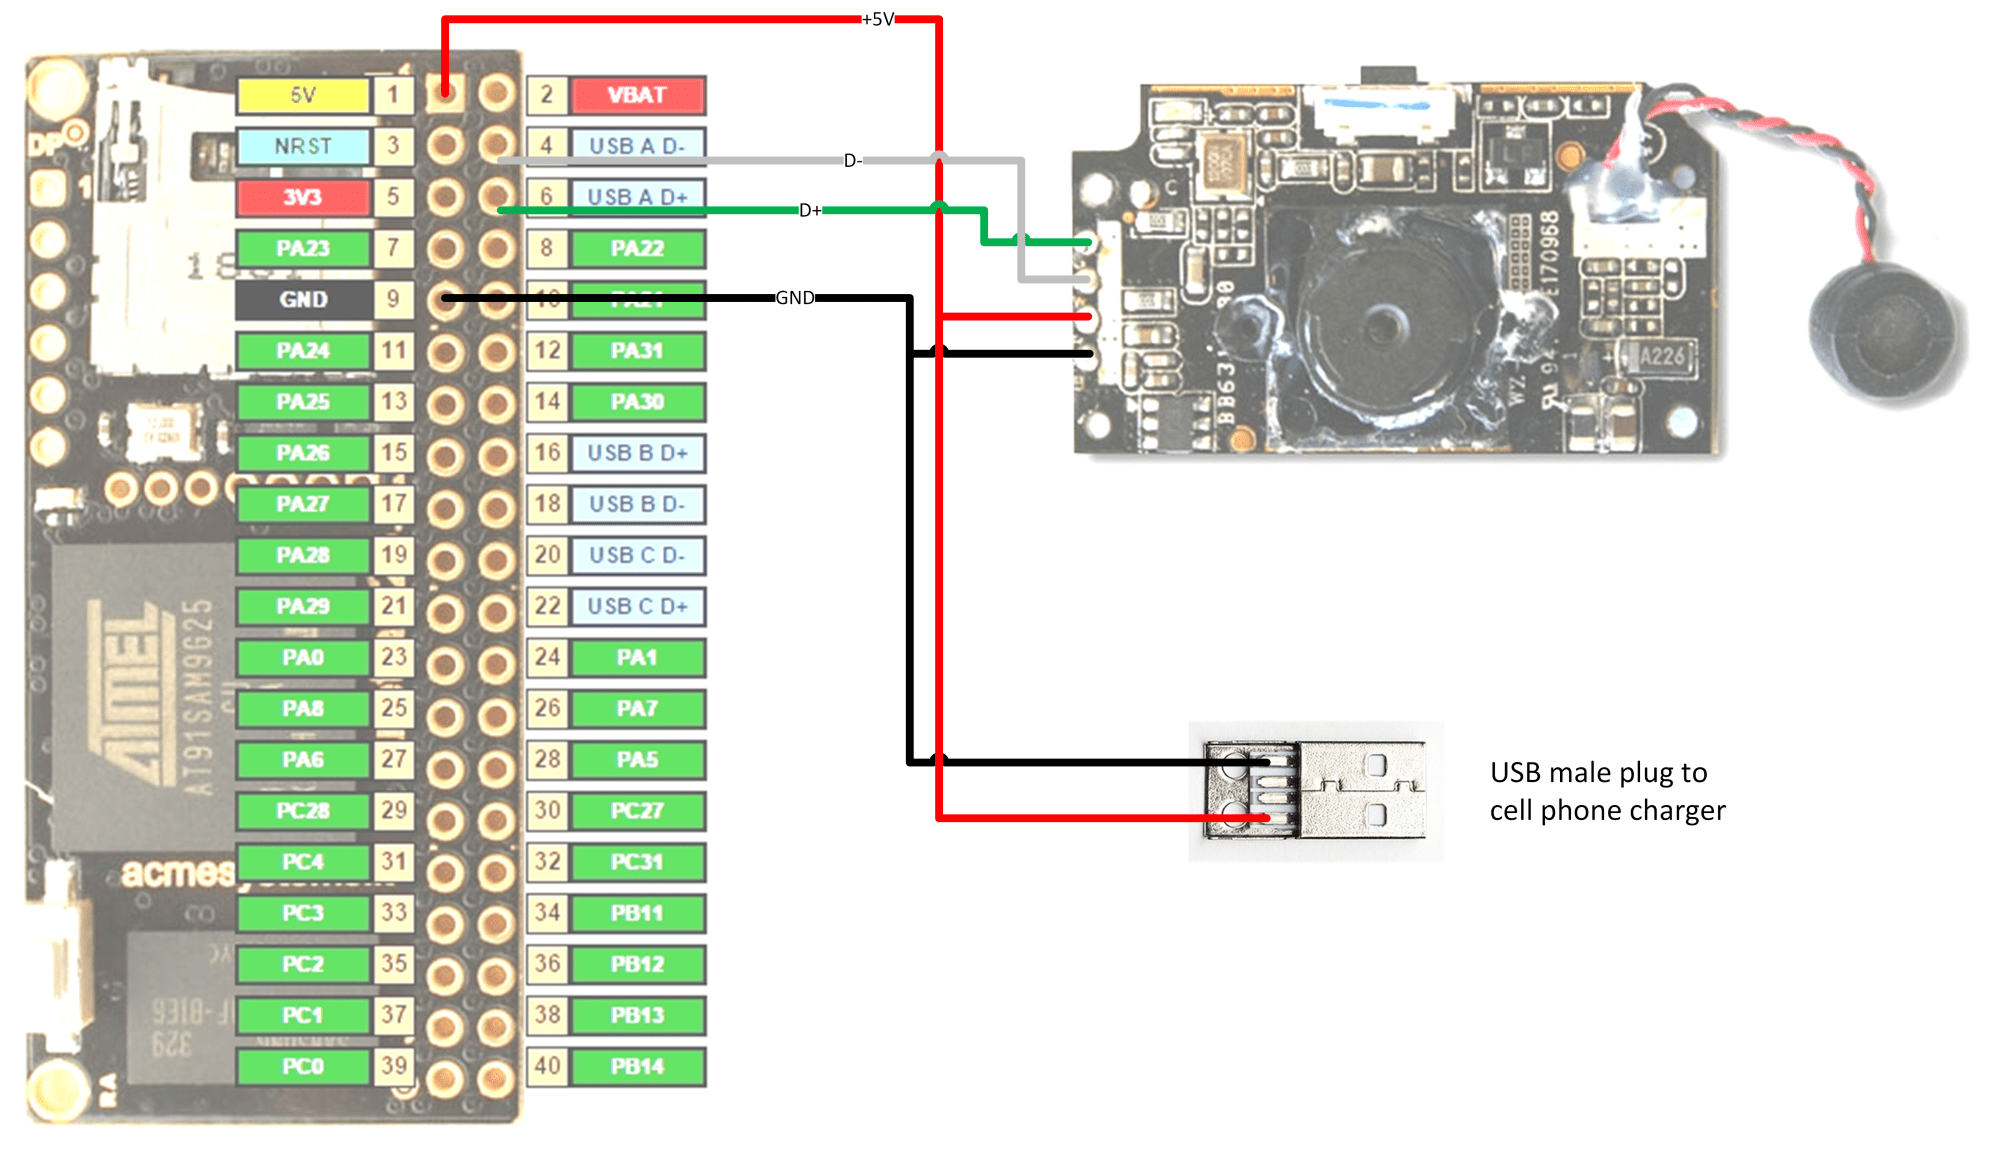 hight resolution of usb web camera wiring diagram best wiring diagram laptop camera wiring diagram wire management wiring